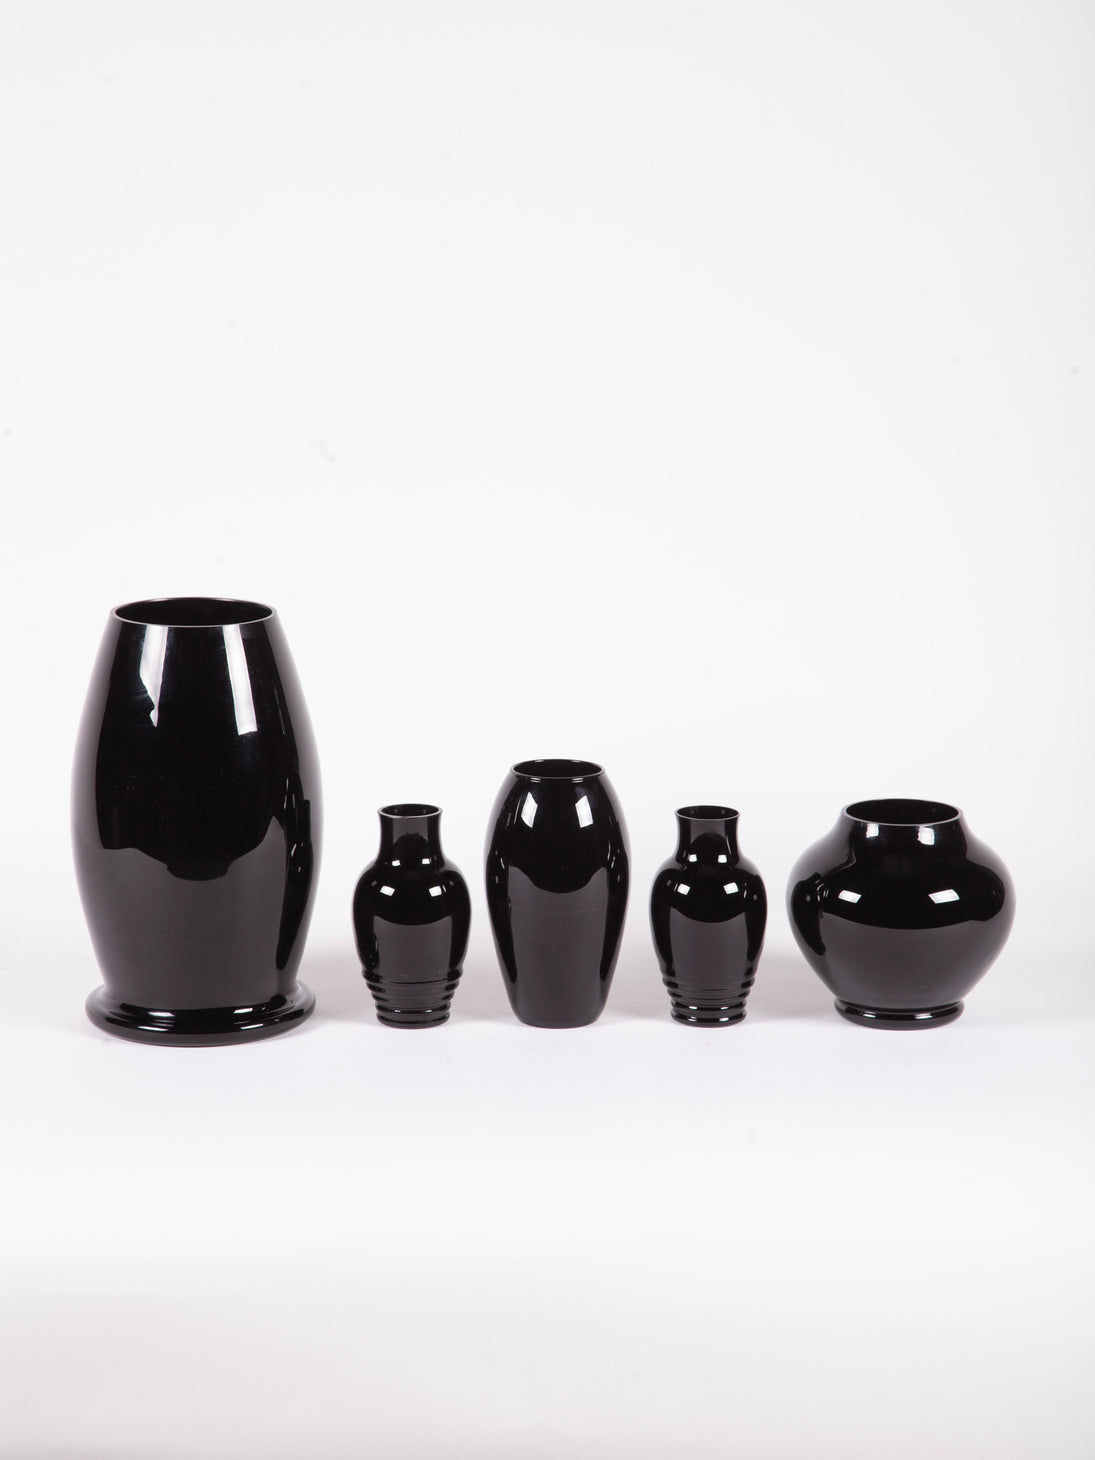 1930s Doyen Vase Collection